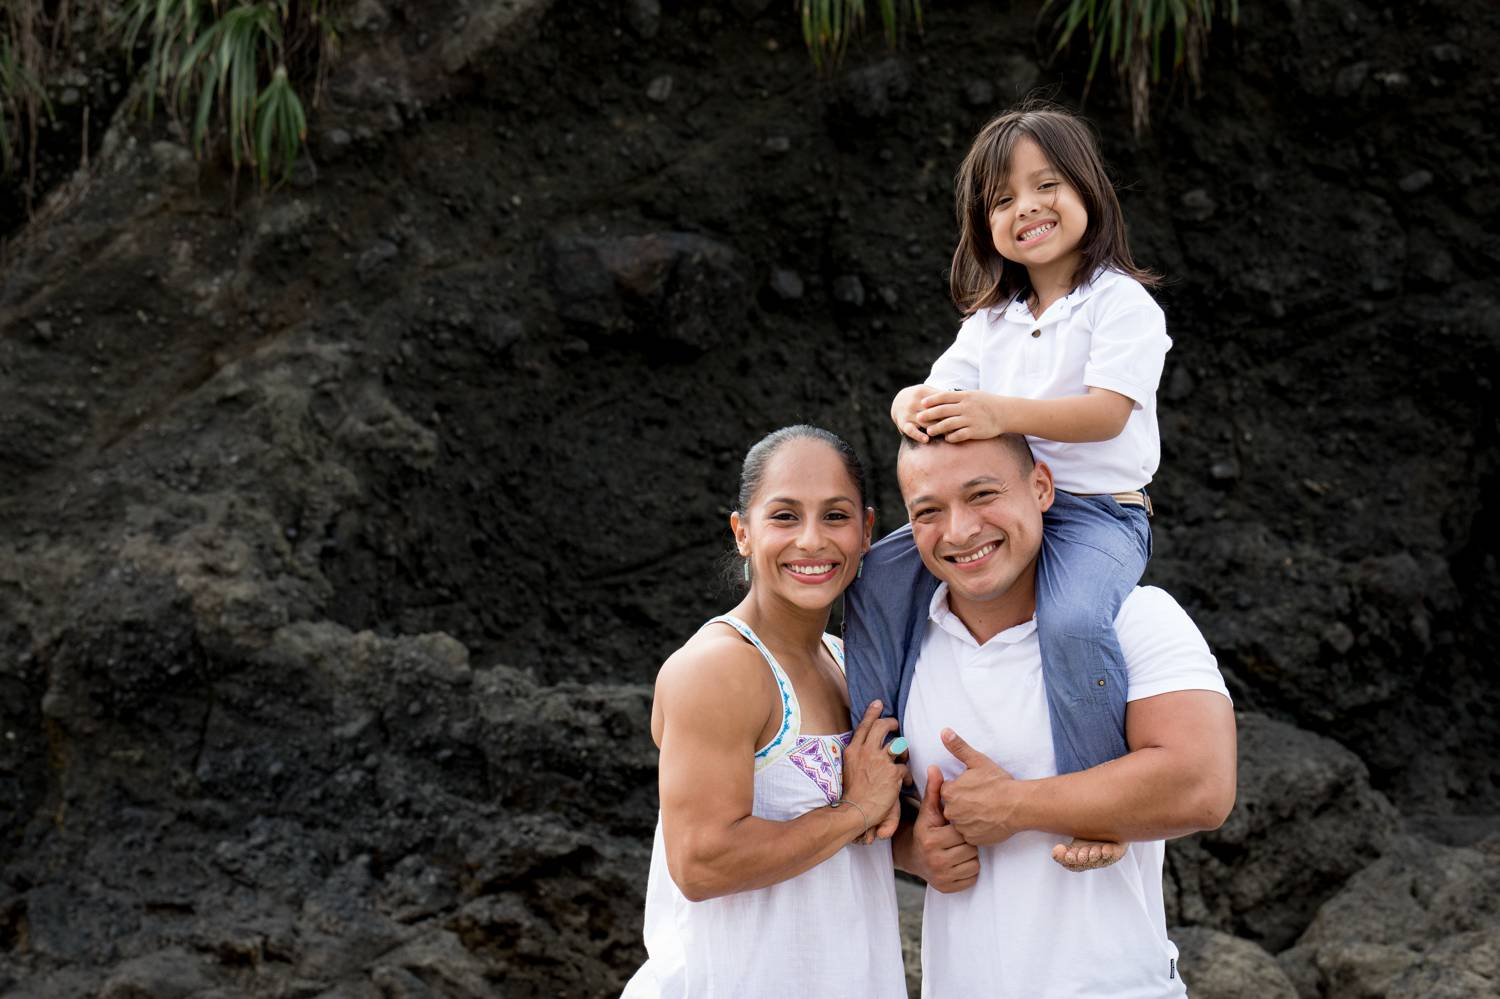 A photo by Kevin Heslin depicts two parents wearing white and posing with a smile as their child sits on the dad's shoulders.